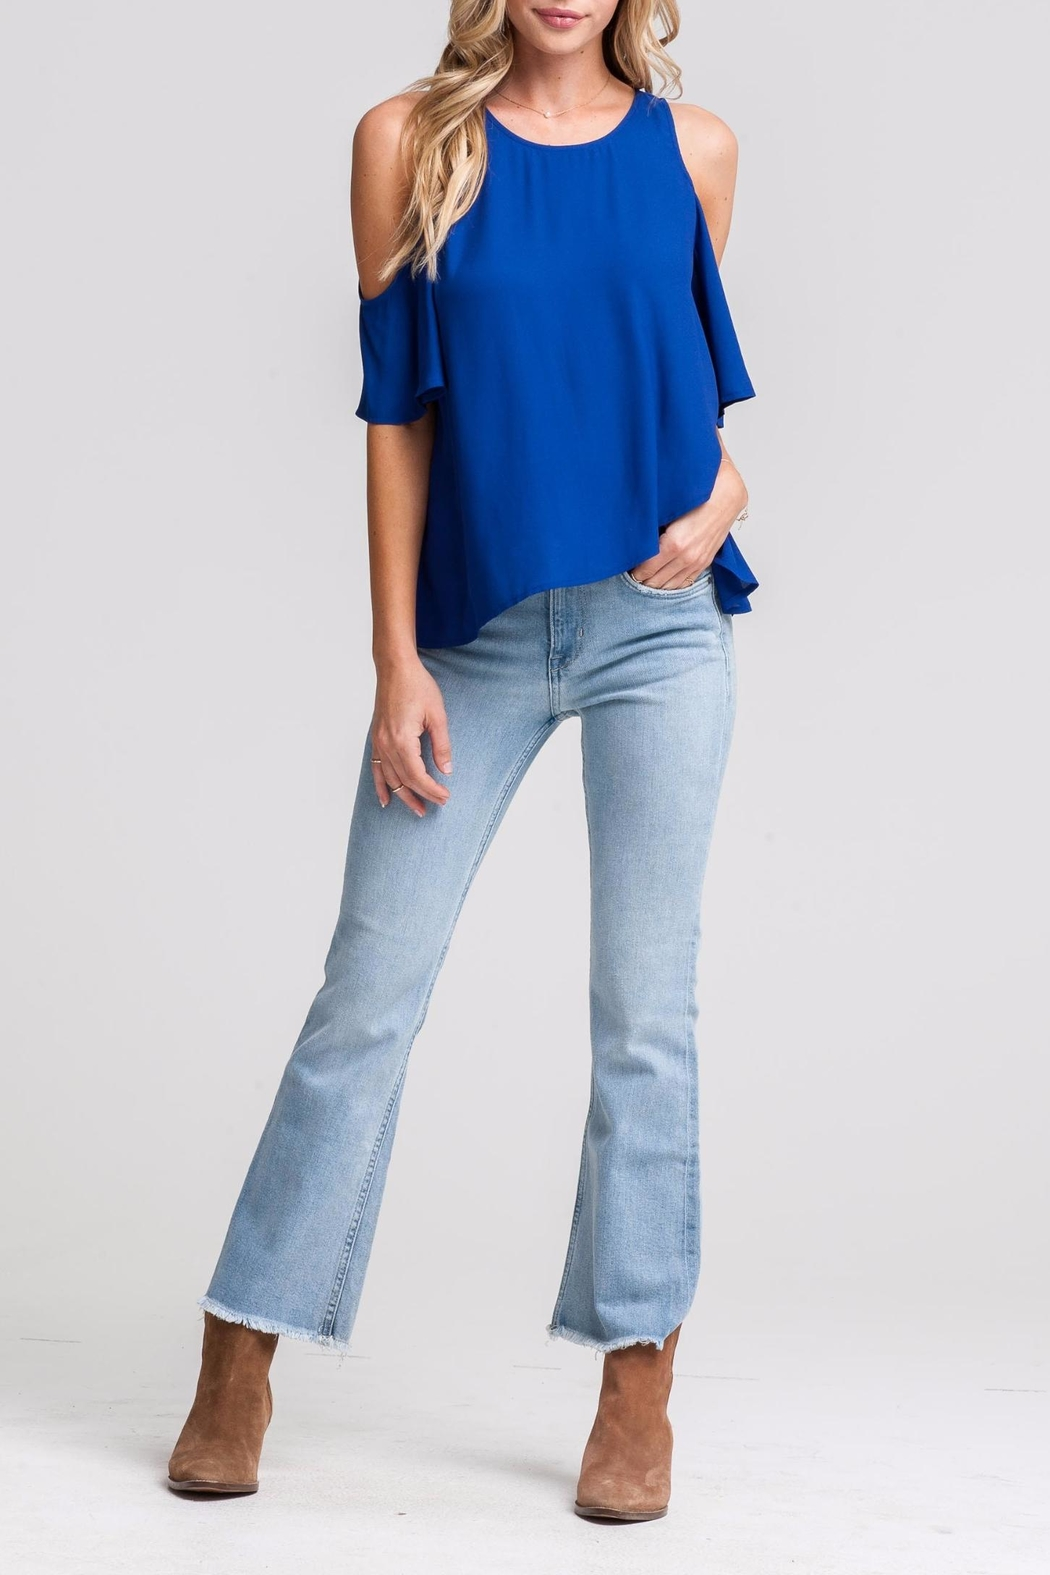 Lush Blue Cold-Shoulder Top - Main Image